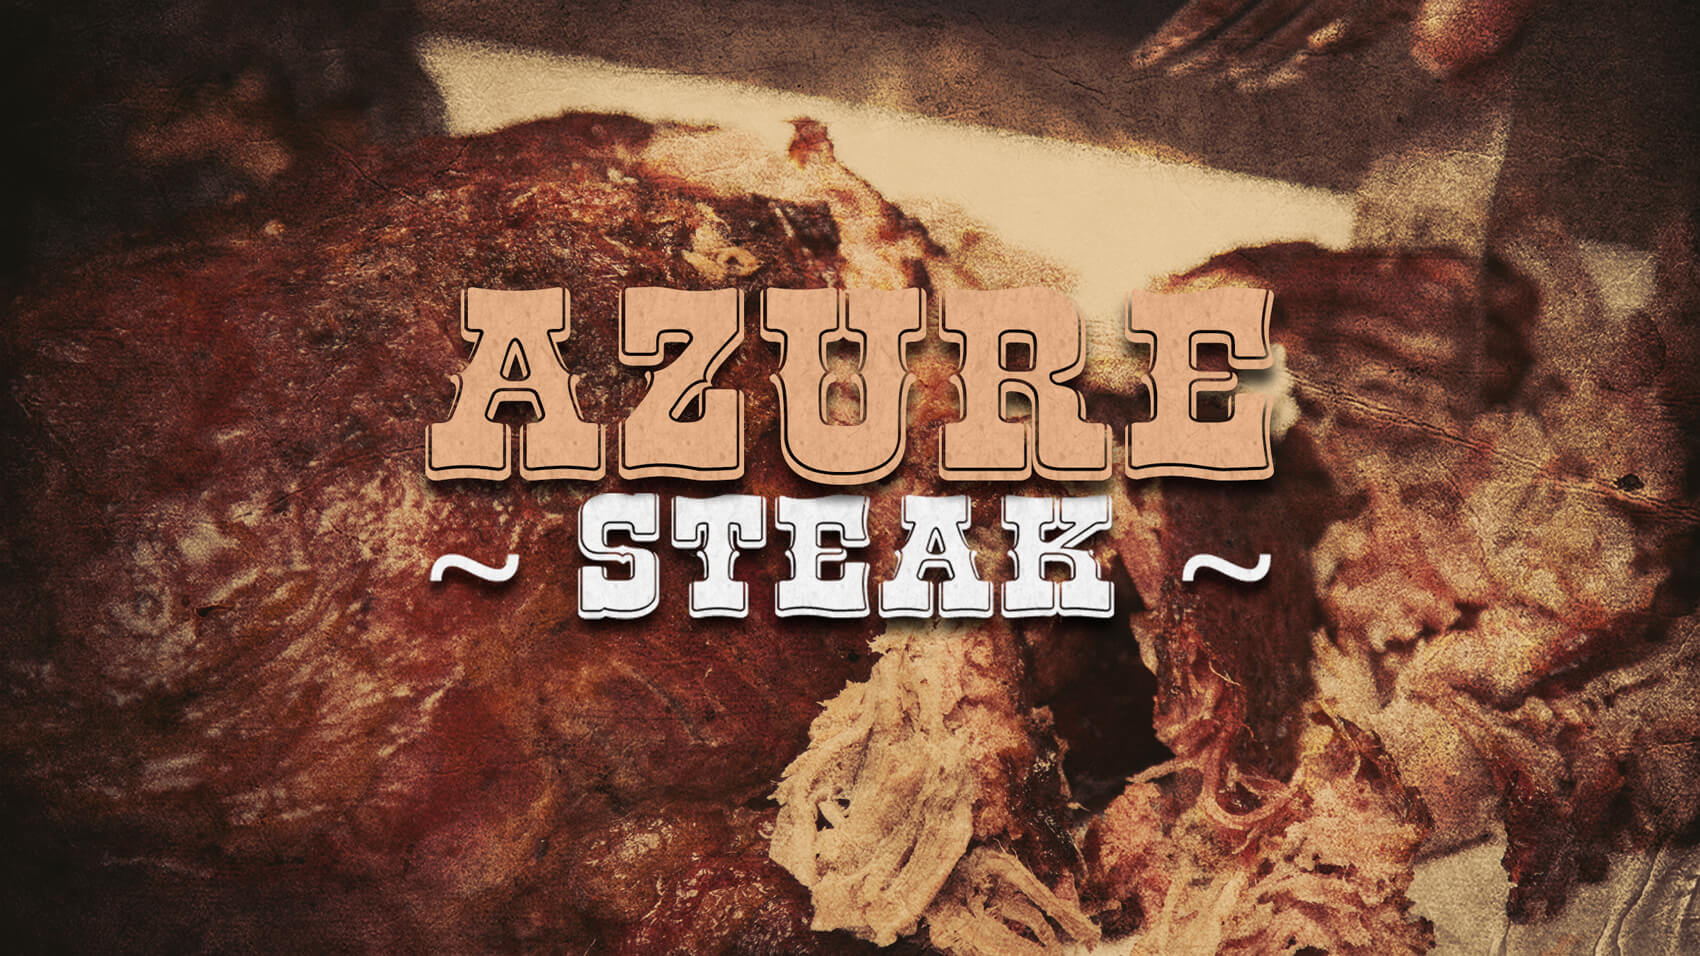 GLOBAL AZURE BOOTCAMP: AZURE STEAK